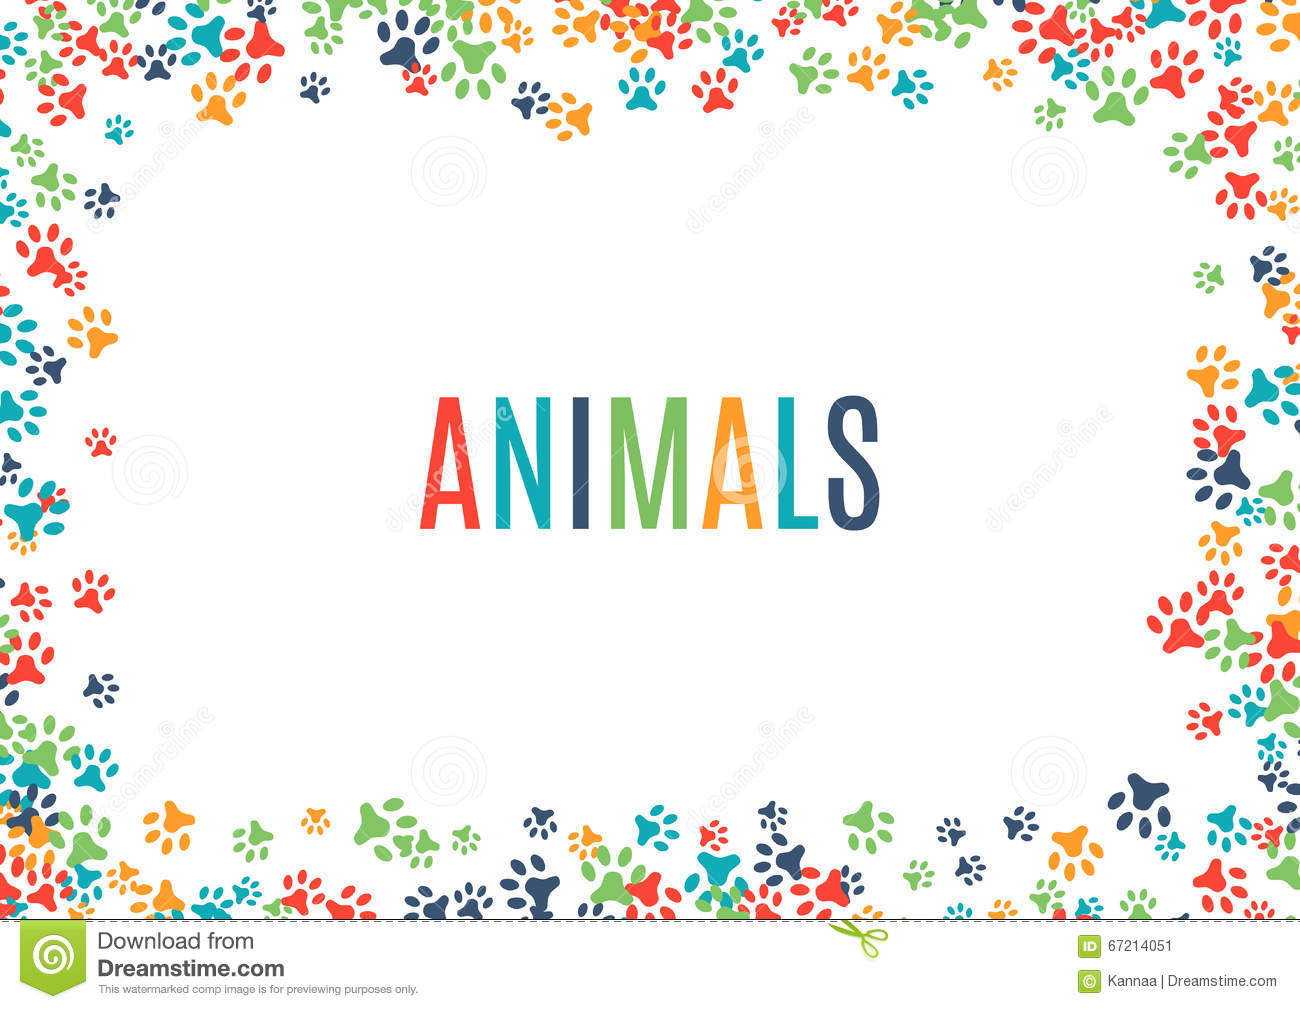 White Backgrounds With Colorful Borders Colorful Animal...